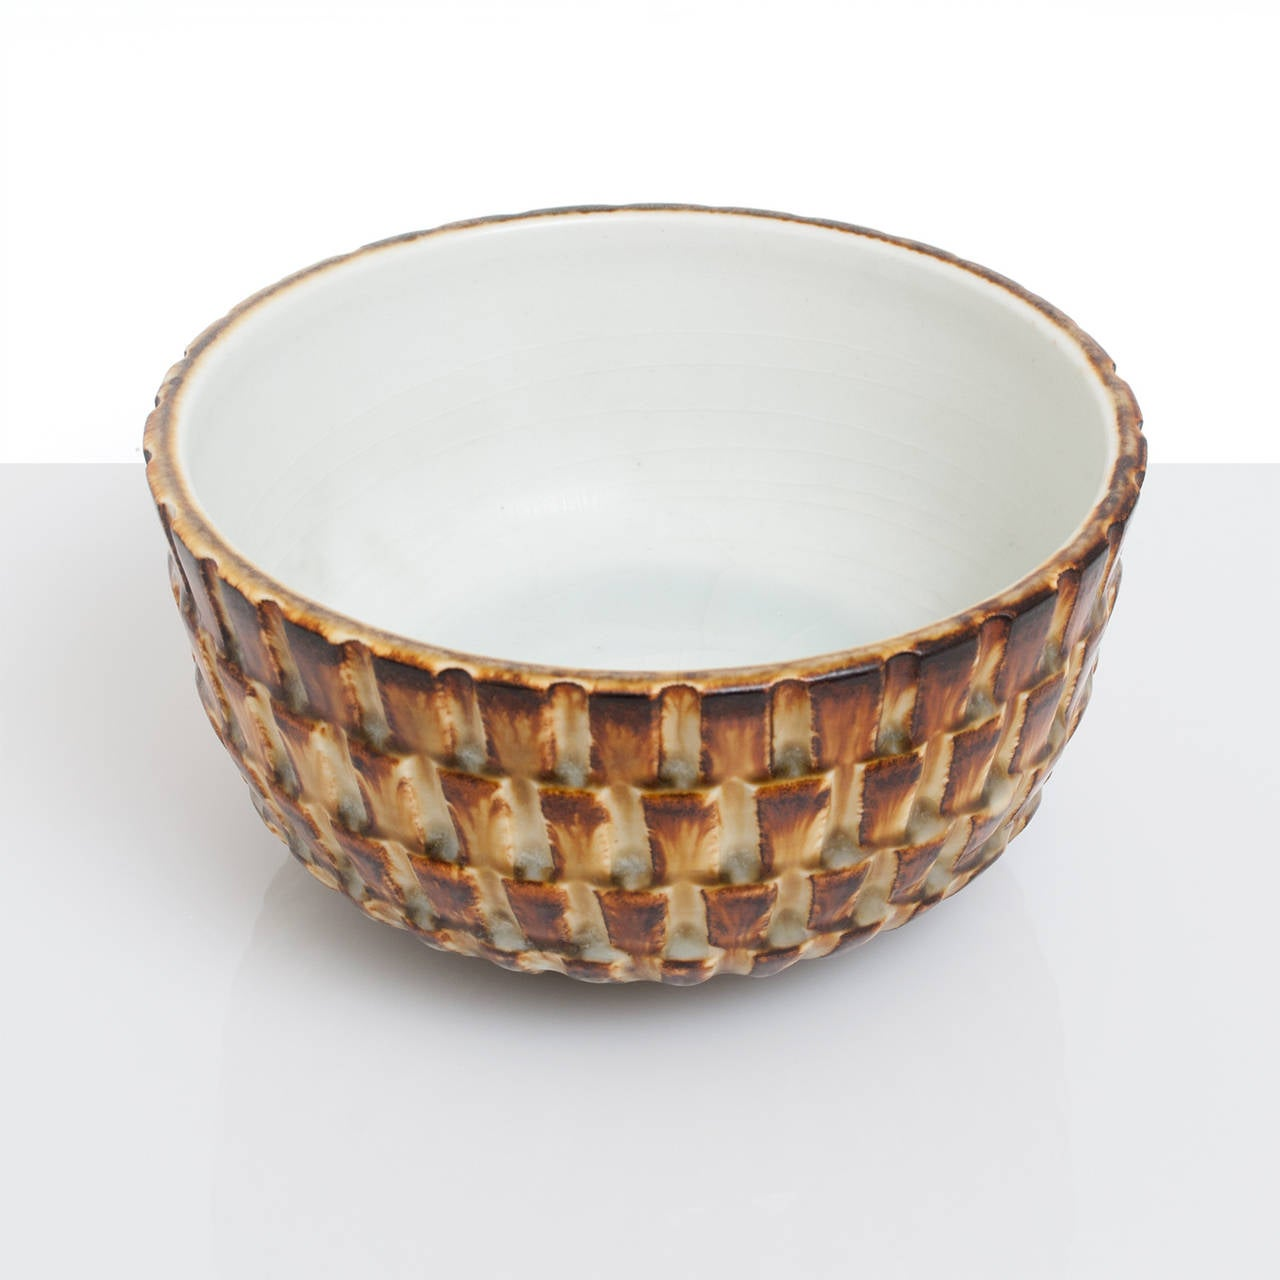 Scandinavian Modern Textured Ceramic Bowl by Gertrud Lonegren, Rörstrand In Excellent Condition For Sale In New York, NY